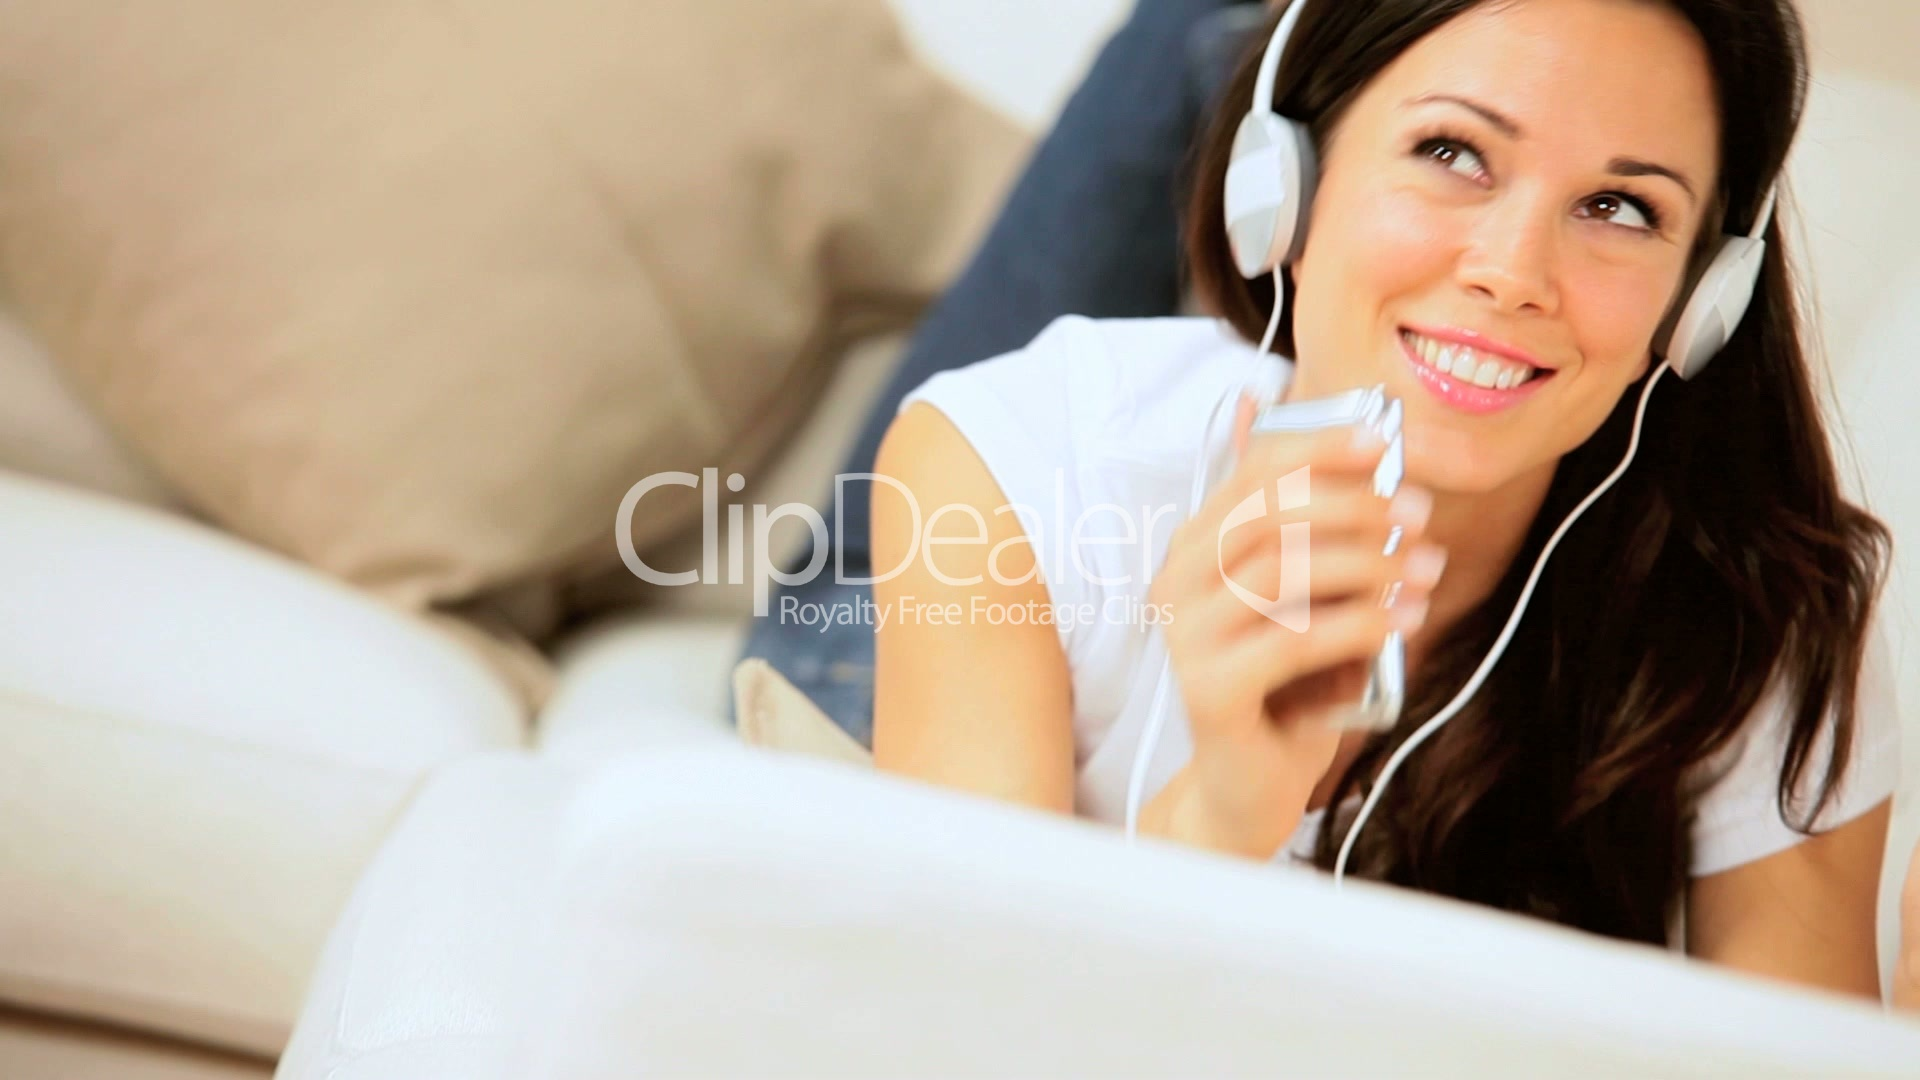 Listen woman pleasure clip